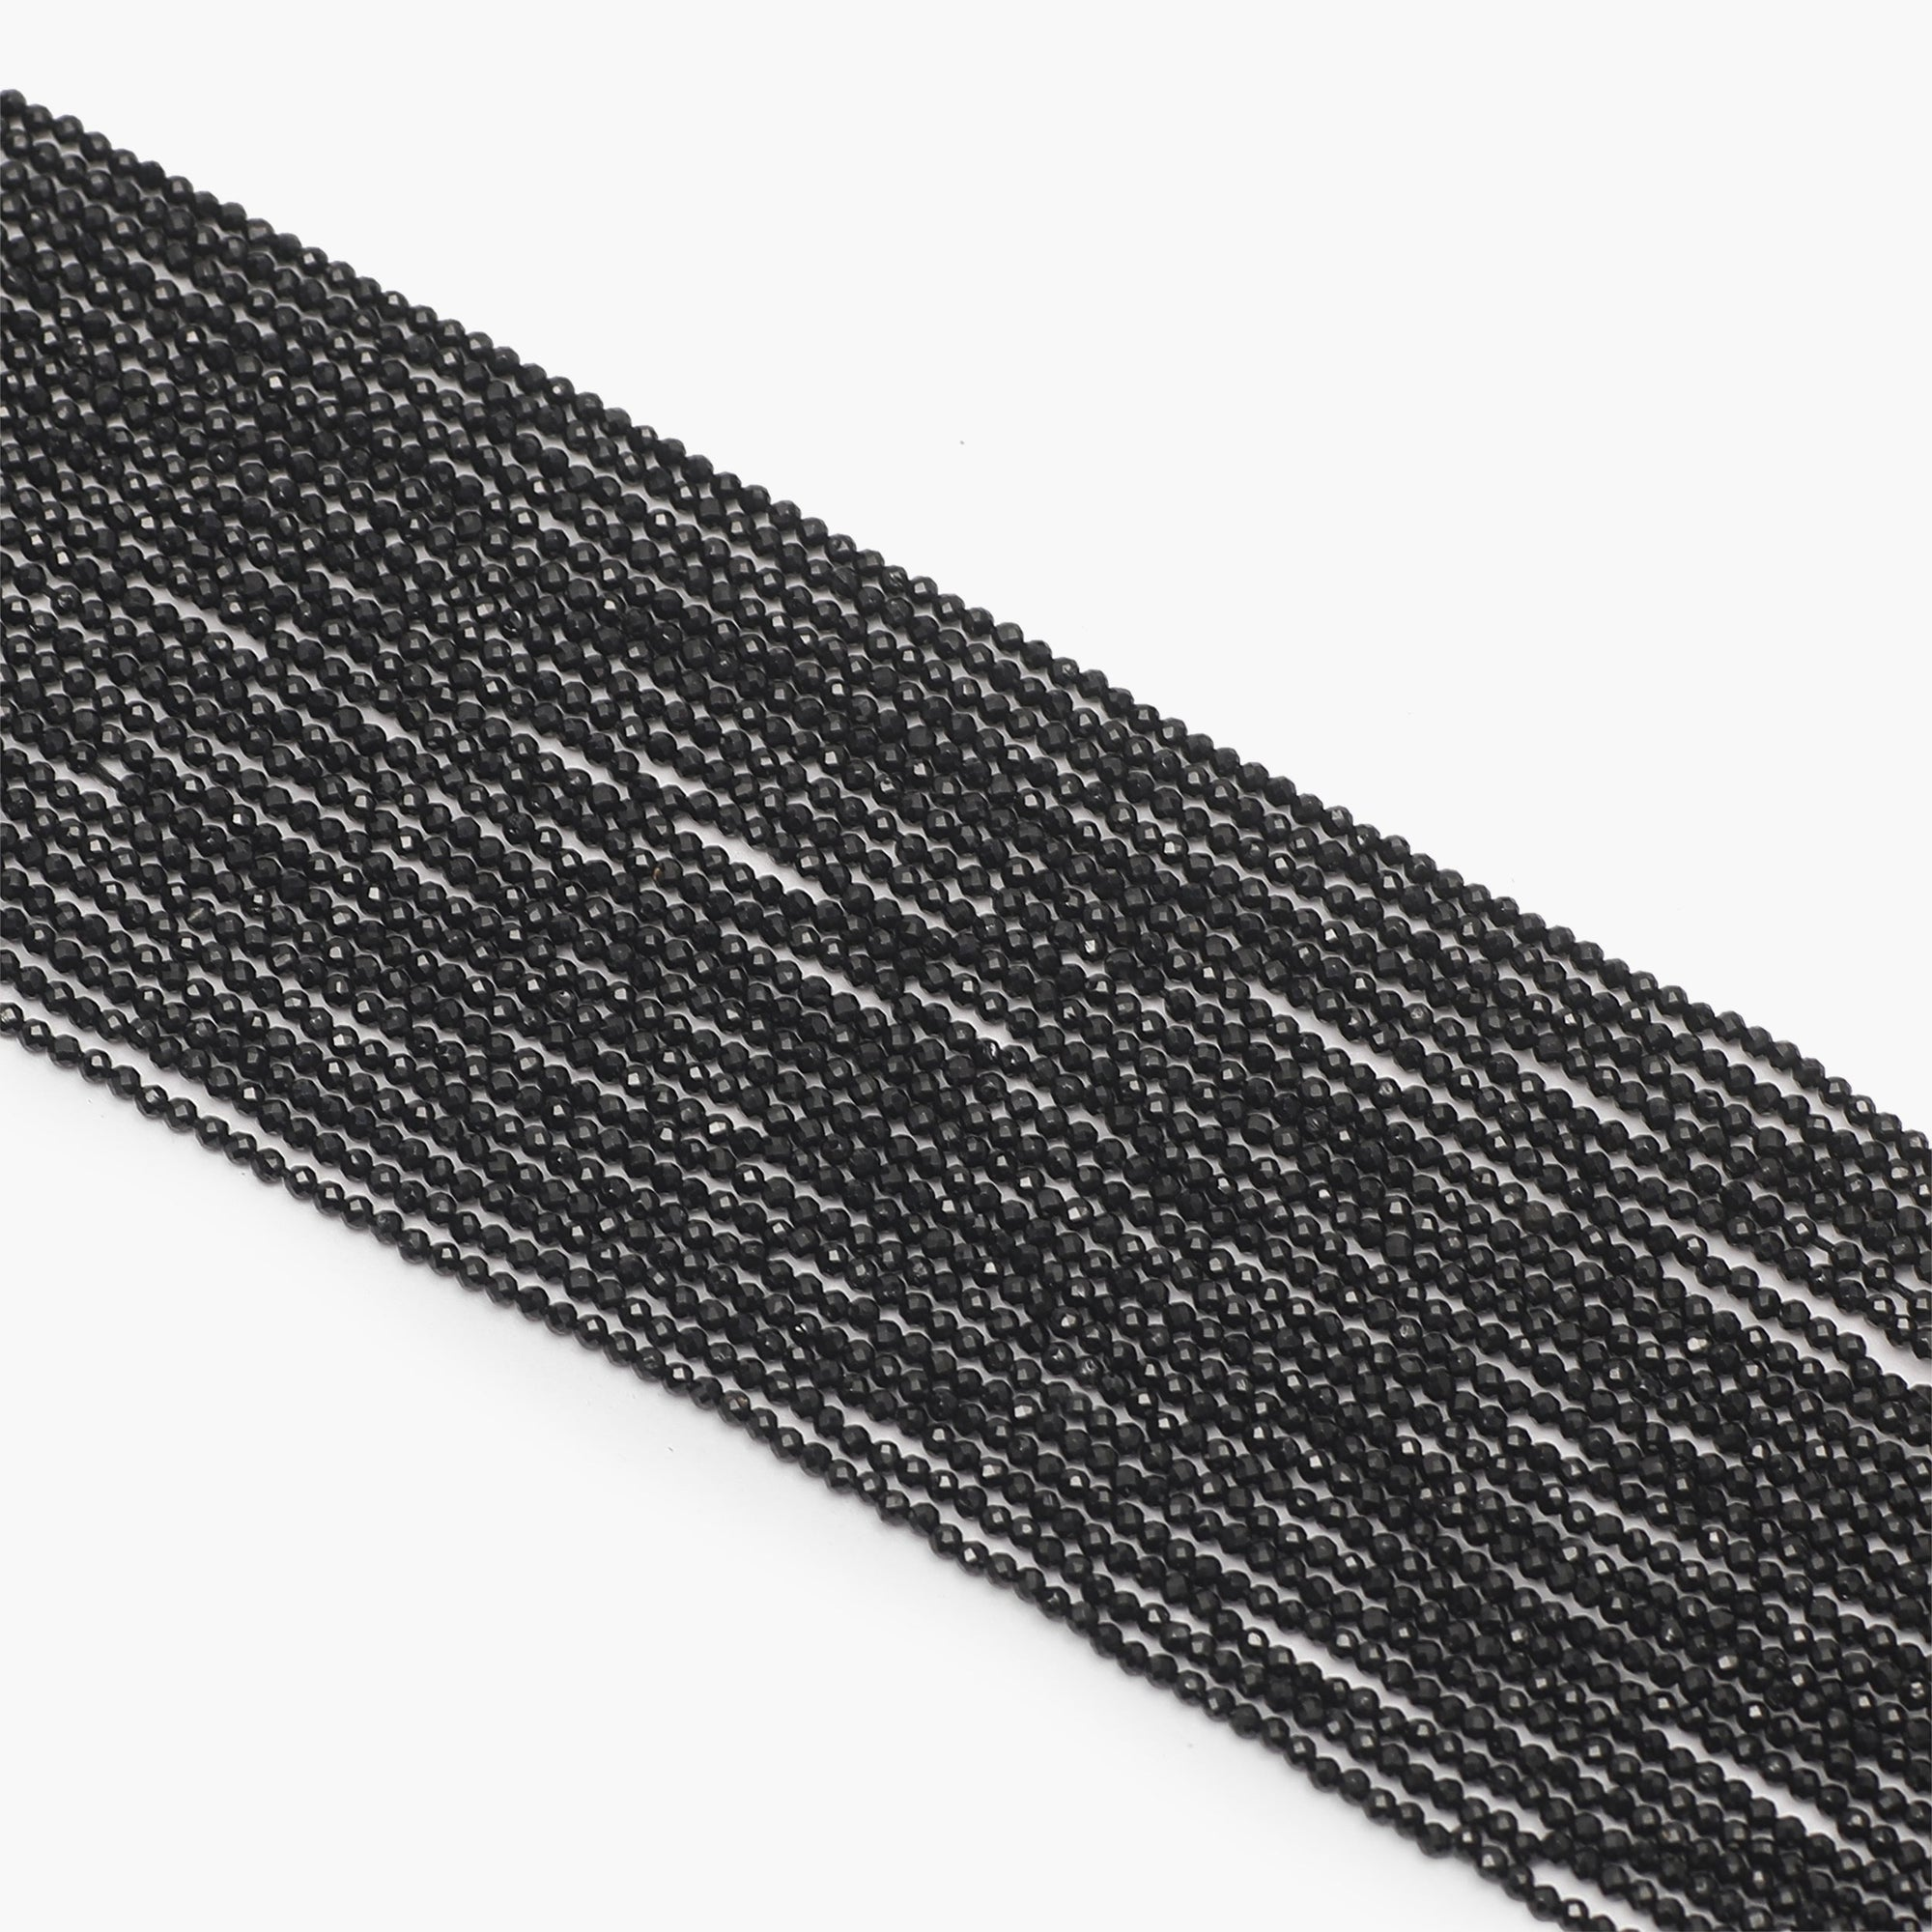 Black Spinal Diamond Cutting Beads- Sold Per Strand